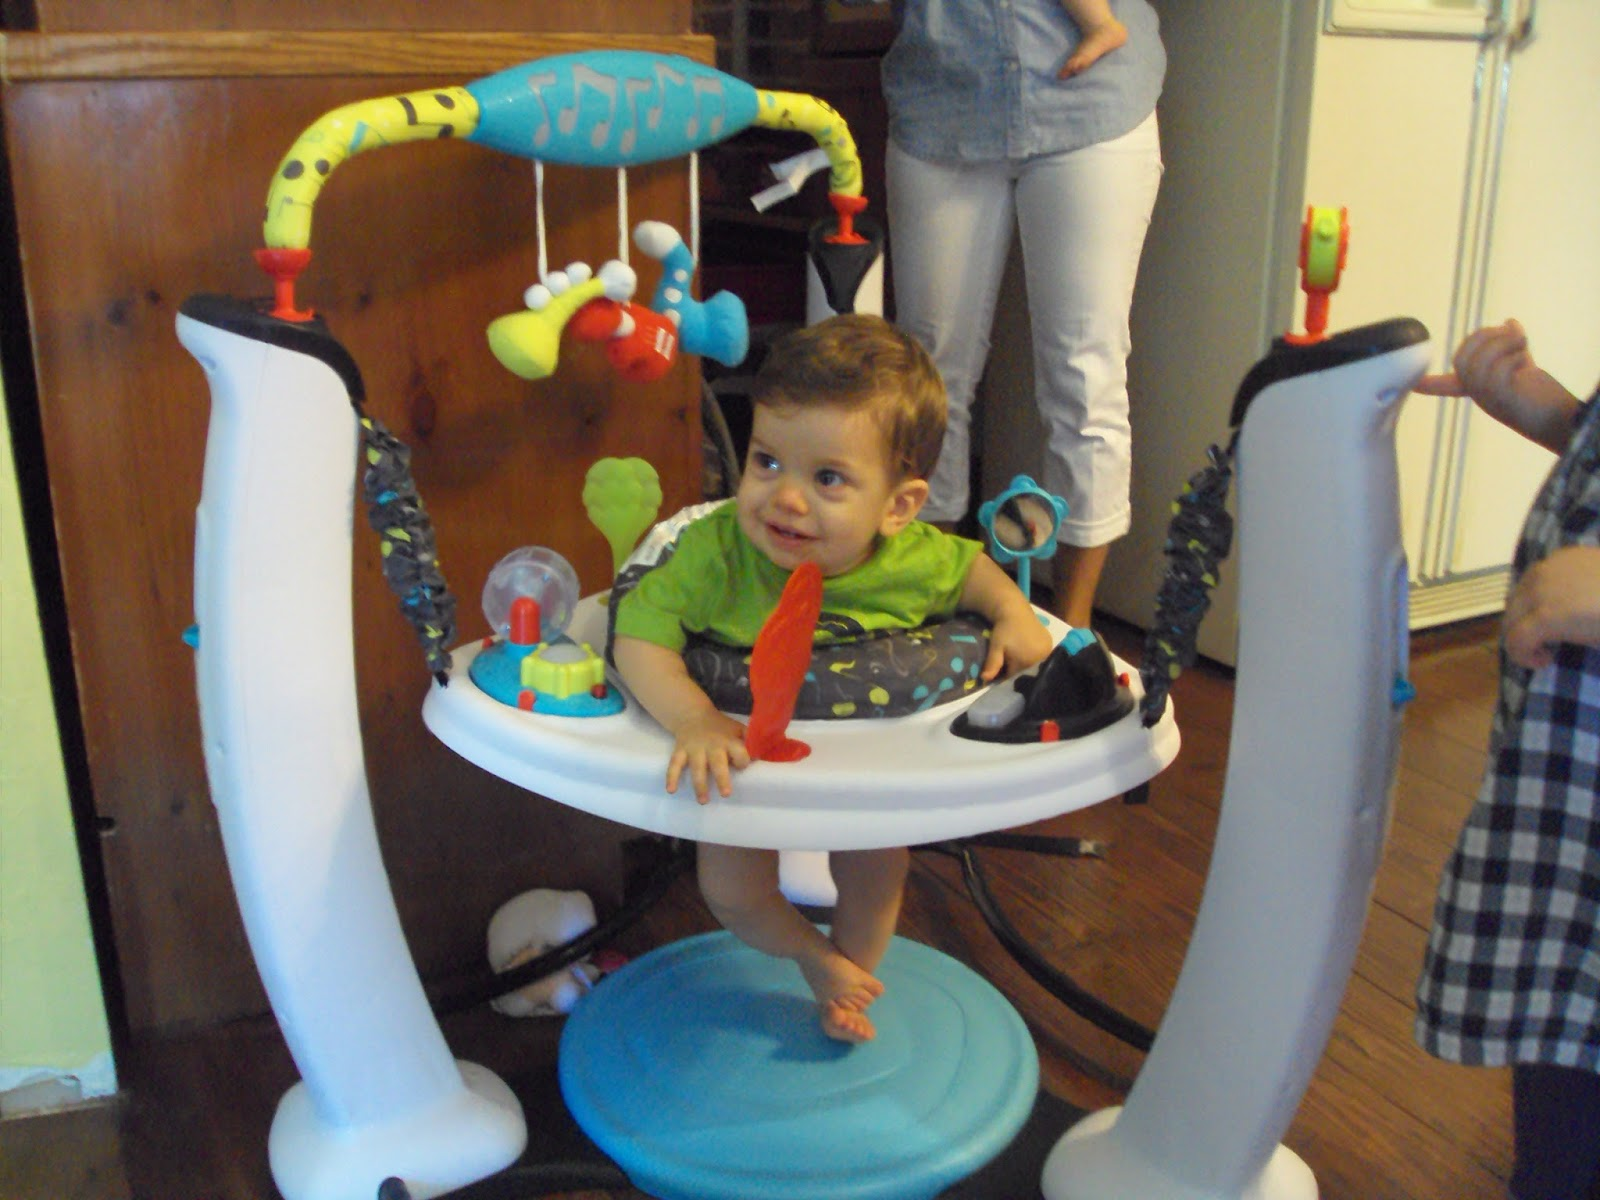 evenflo exersaucer jump and learn jam session manual